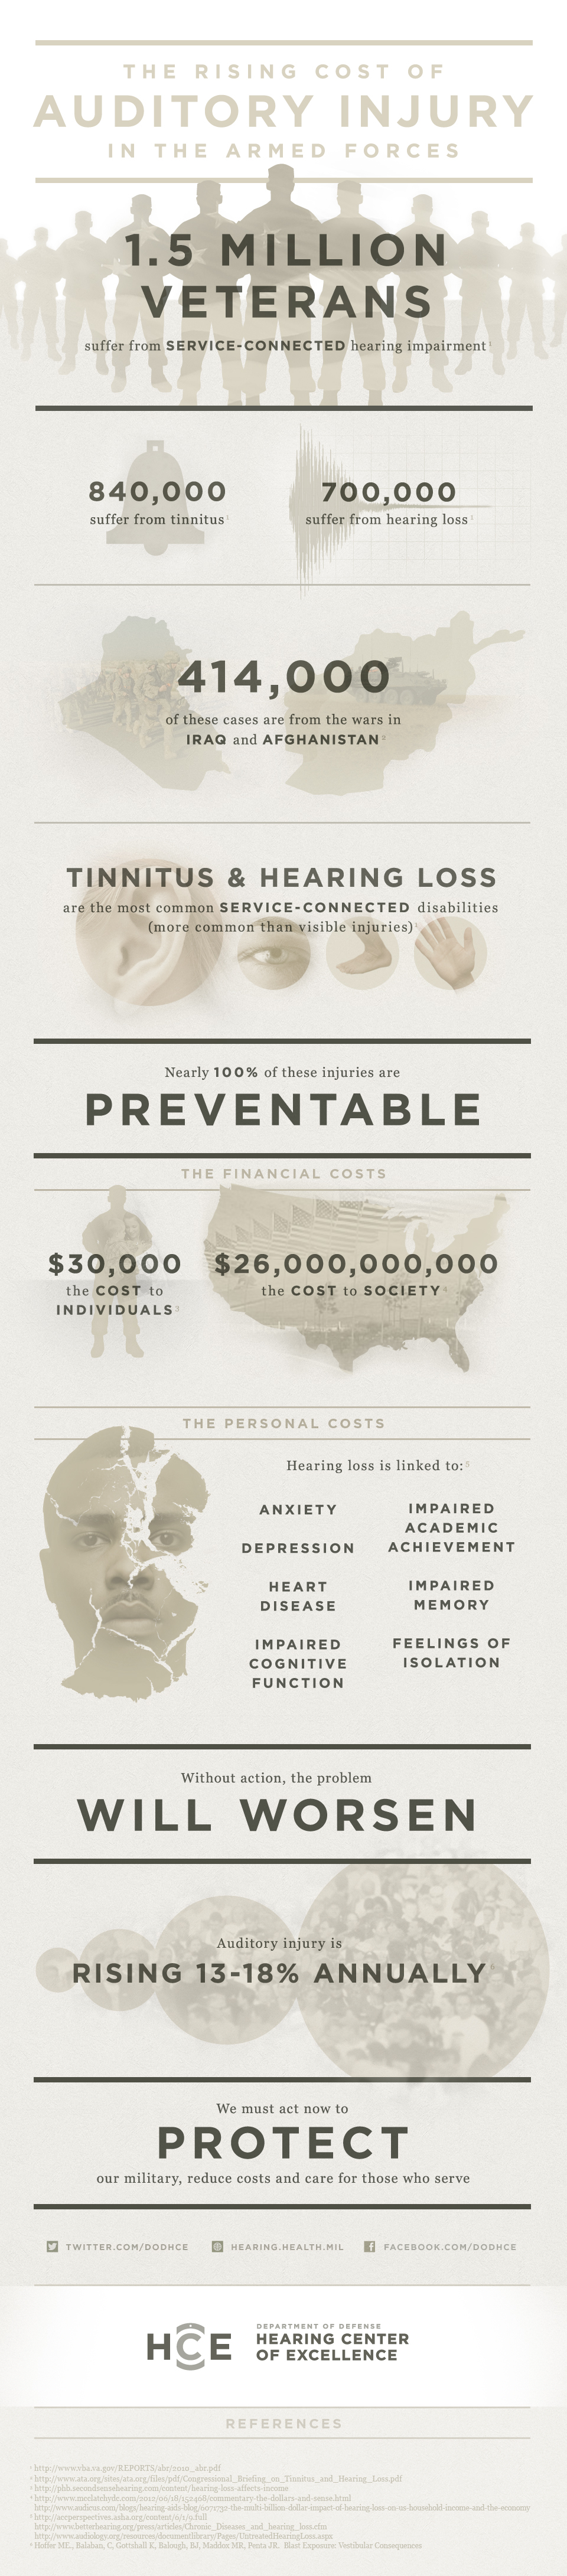 the-rising-cost-of-auditory-injury-in-the-armed-forces_508ae9c9b05c7